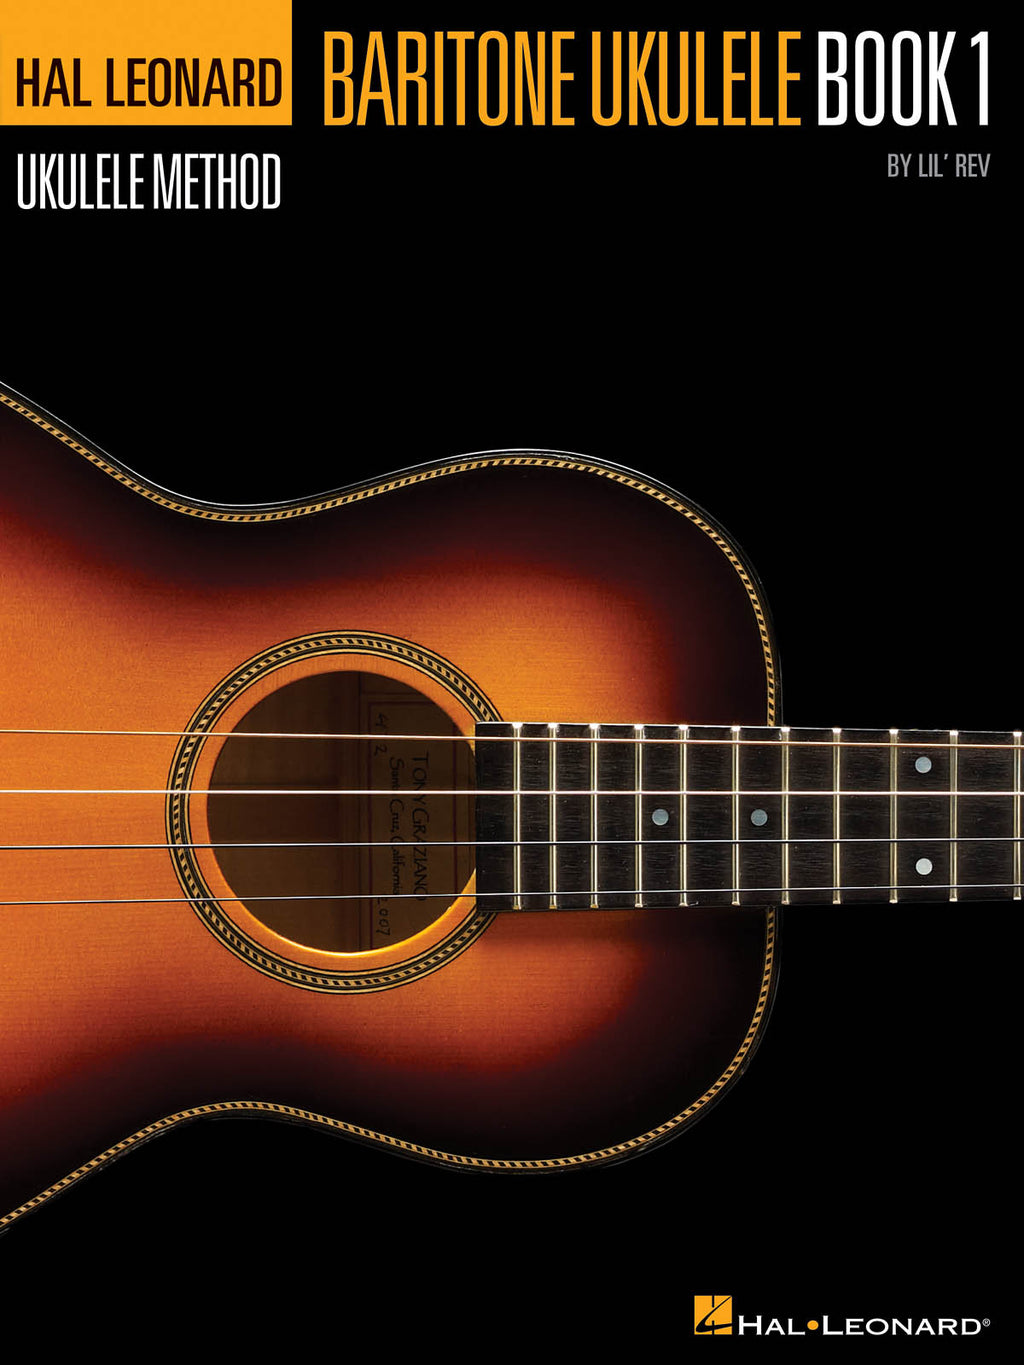 Baritone Ukulele Method (Book 1) - Instructional Songbook